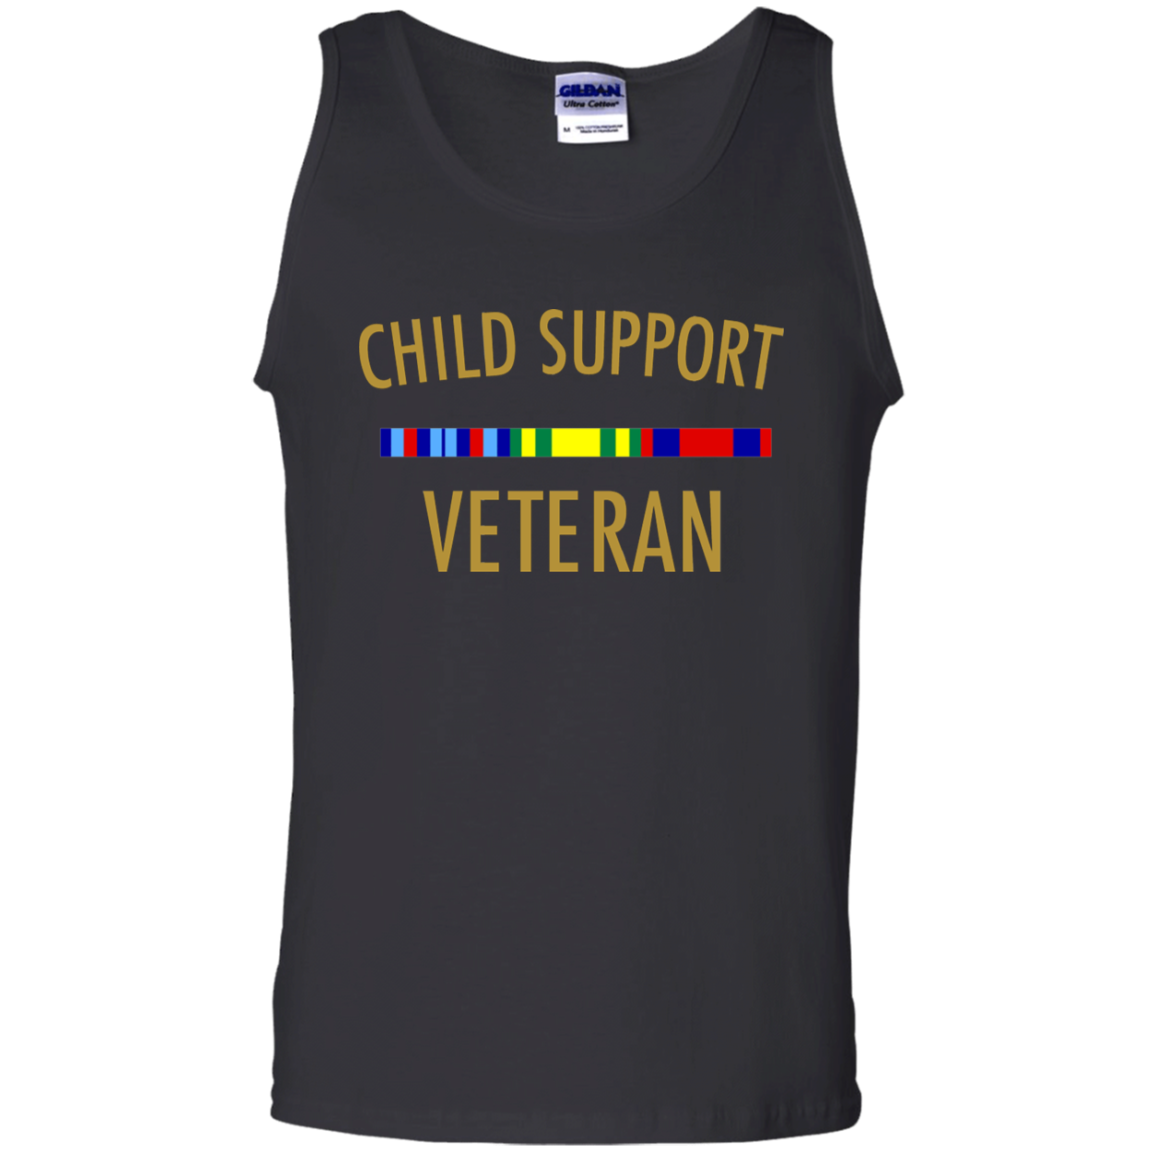 Child support veteran funny Tank Top